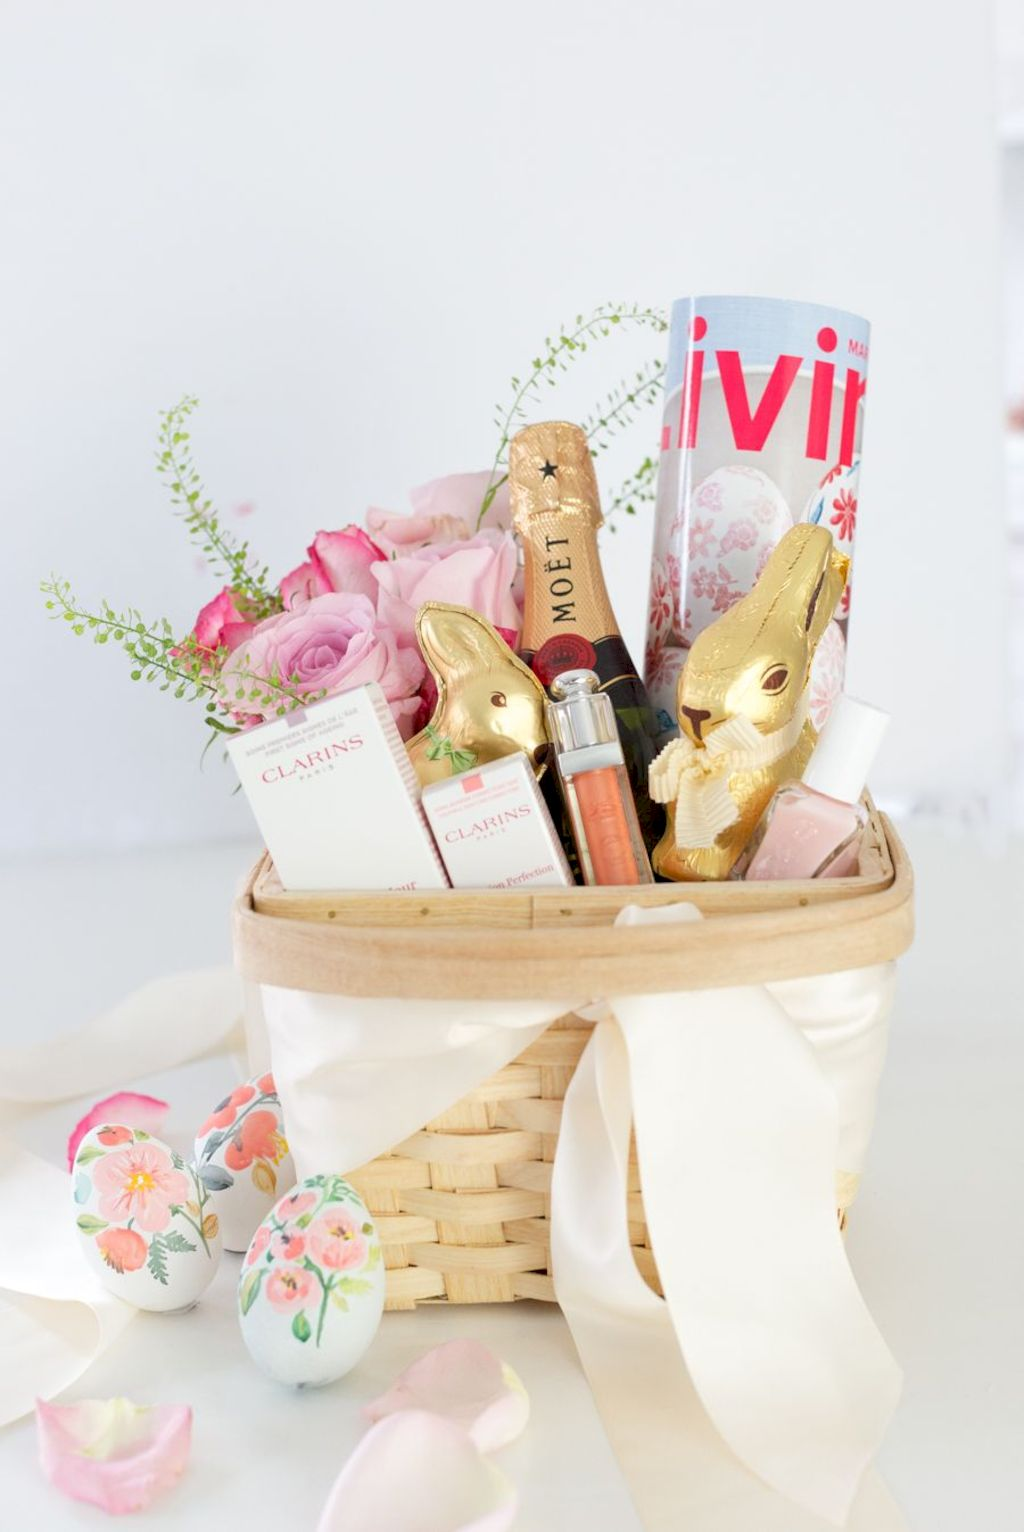 DIY Easter basket ideas made from affordable and recycled materials very charming as Spring celebration accessories Image 5